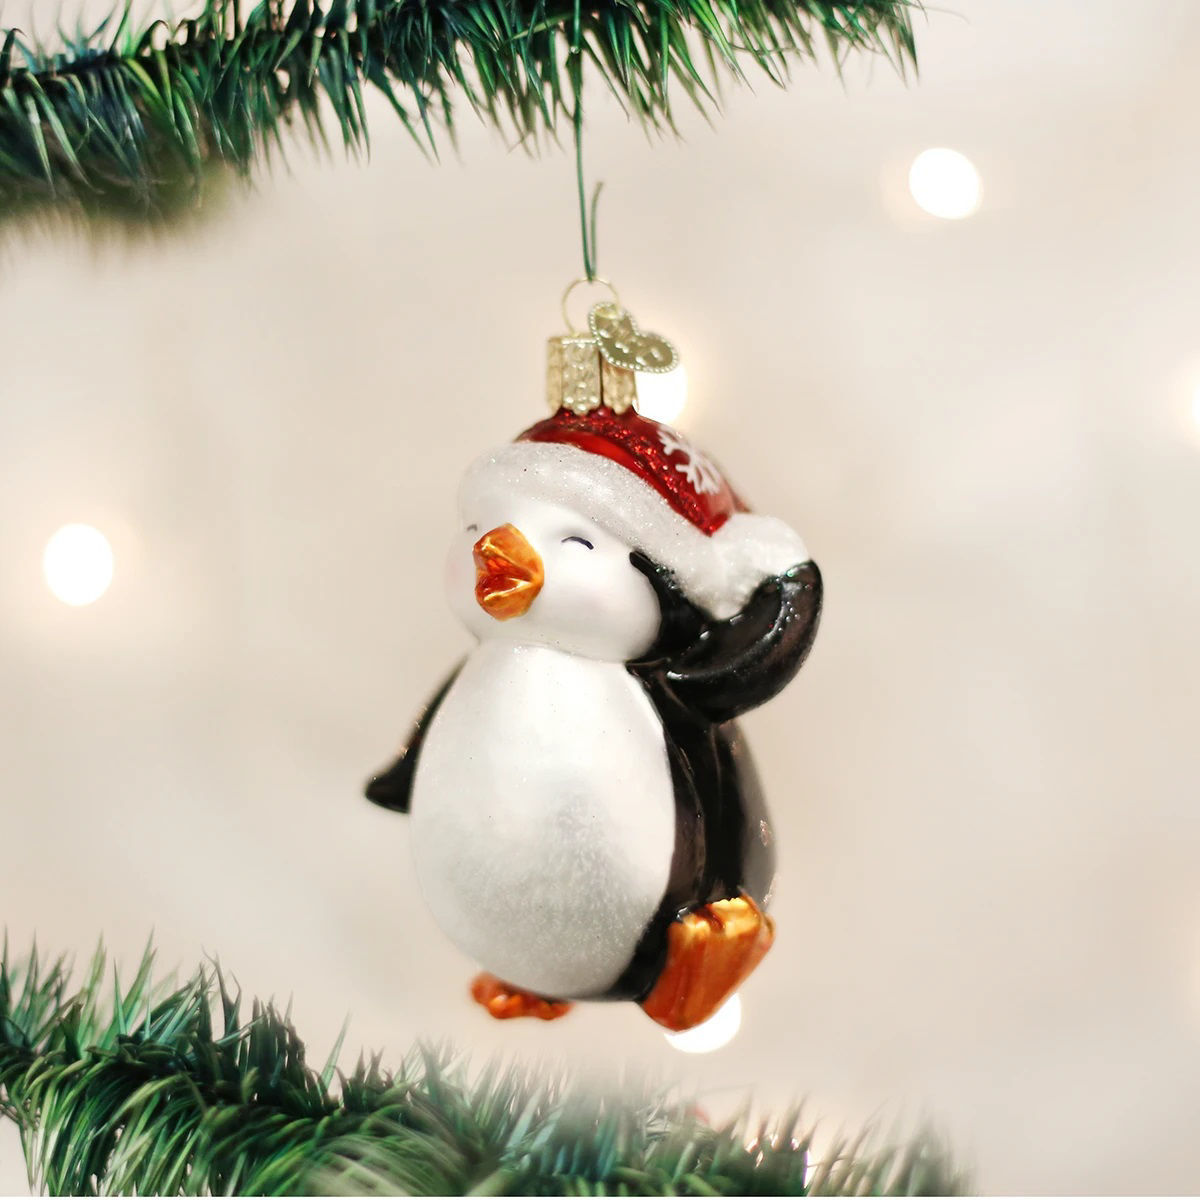 Dancing Penguin Ornament by Old World Christmas